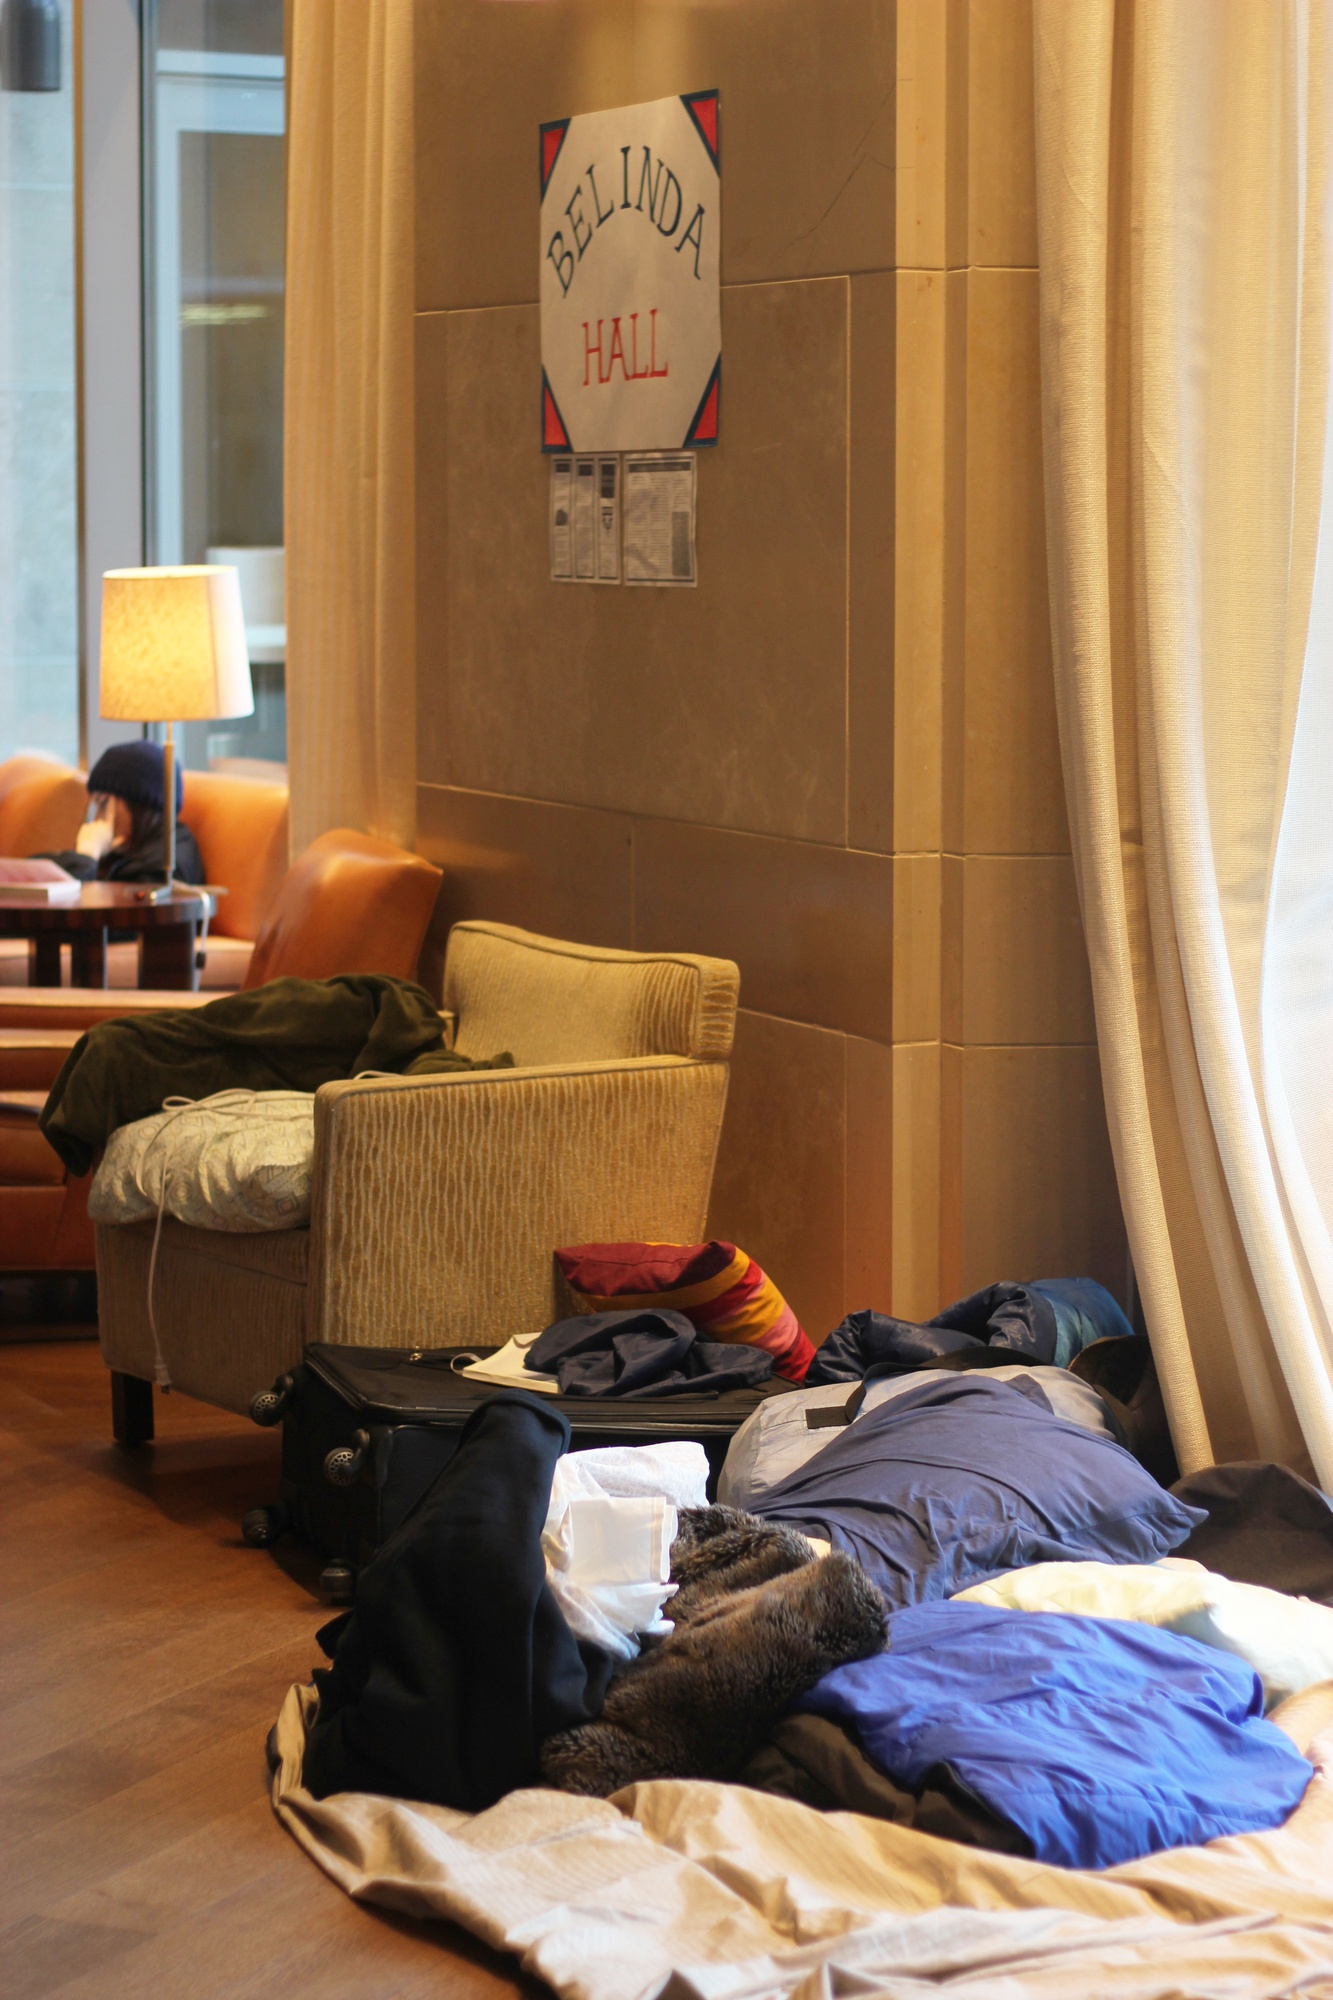 """Pillows, blankets, and suitcases cover the floor in the Law School's Caspersen Student Center lounge so student activists can continue to occupy the space as part of the Reclaim Harvard Law protests. The activists have now occupied the lounge, which they have dubbed """"Belinda Hall,"""" for three weeks and plan to continue the occupation for the foreseeable future."""